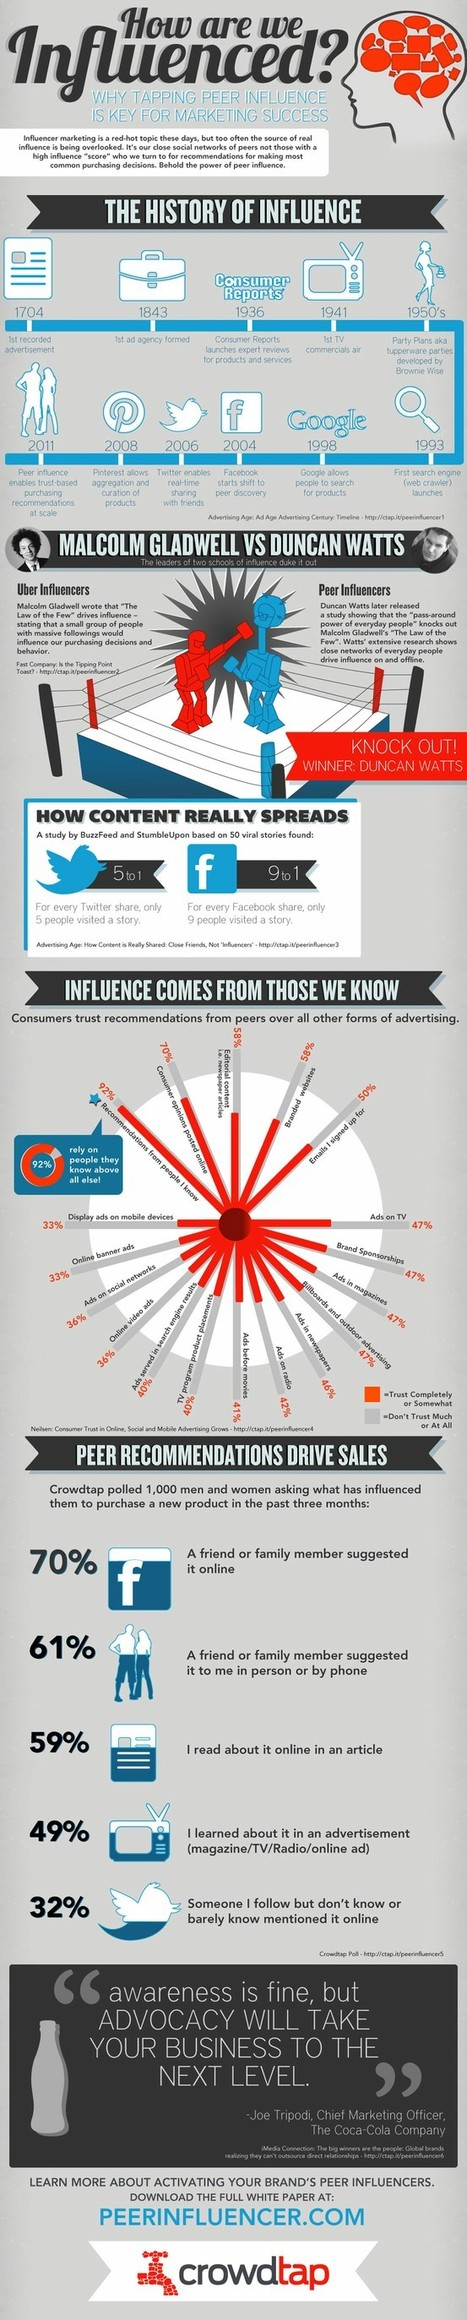 Who Are the Real Influencers? [Infographic] | DV8 Digital Marketing Tips and Insight | Scoop.it